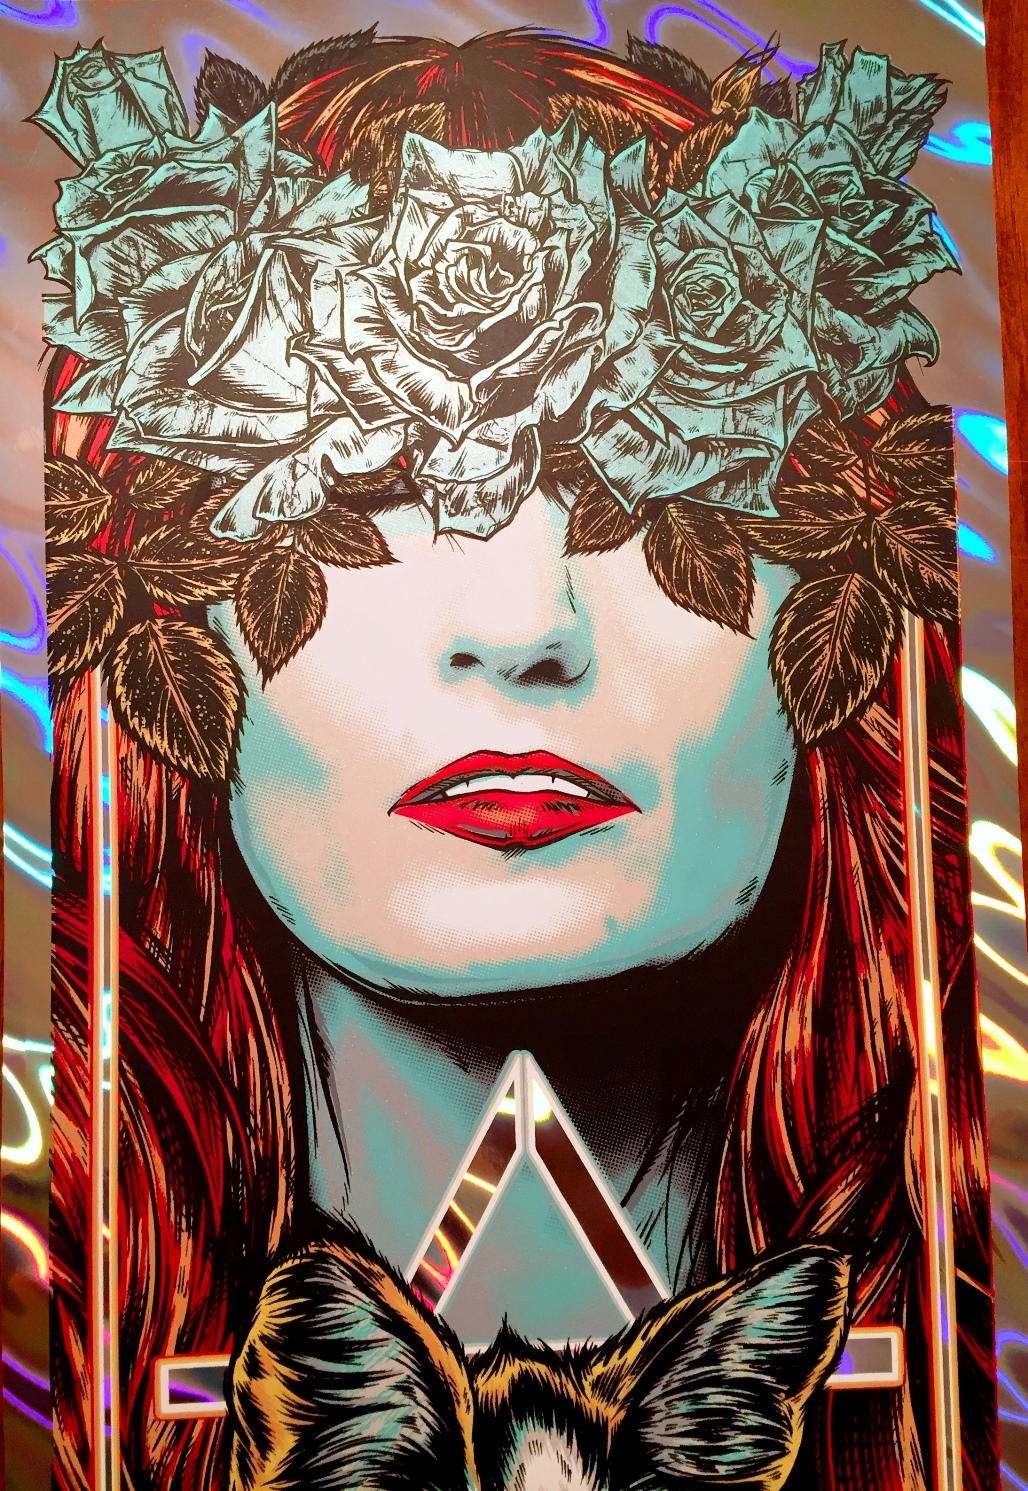 Florence The Machine Austin Tx 2016 E2 80 B3 By Rhys Cooper 12 E2 80 B 6 Color Screenprint Ed Of 65 S N 65 Holographic Foil Variant